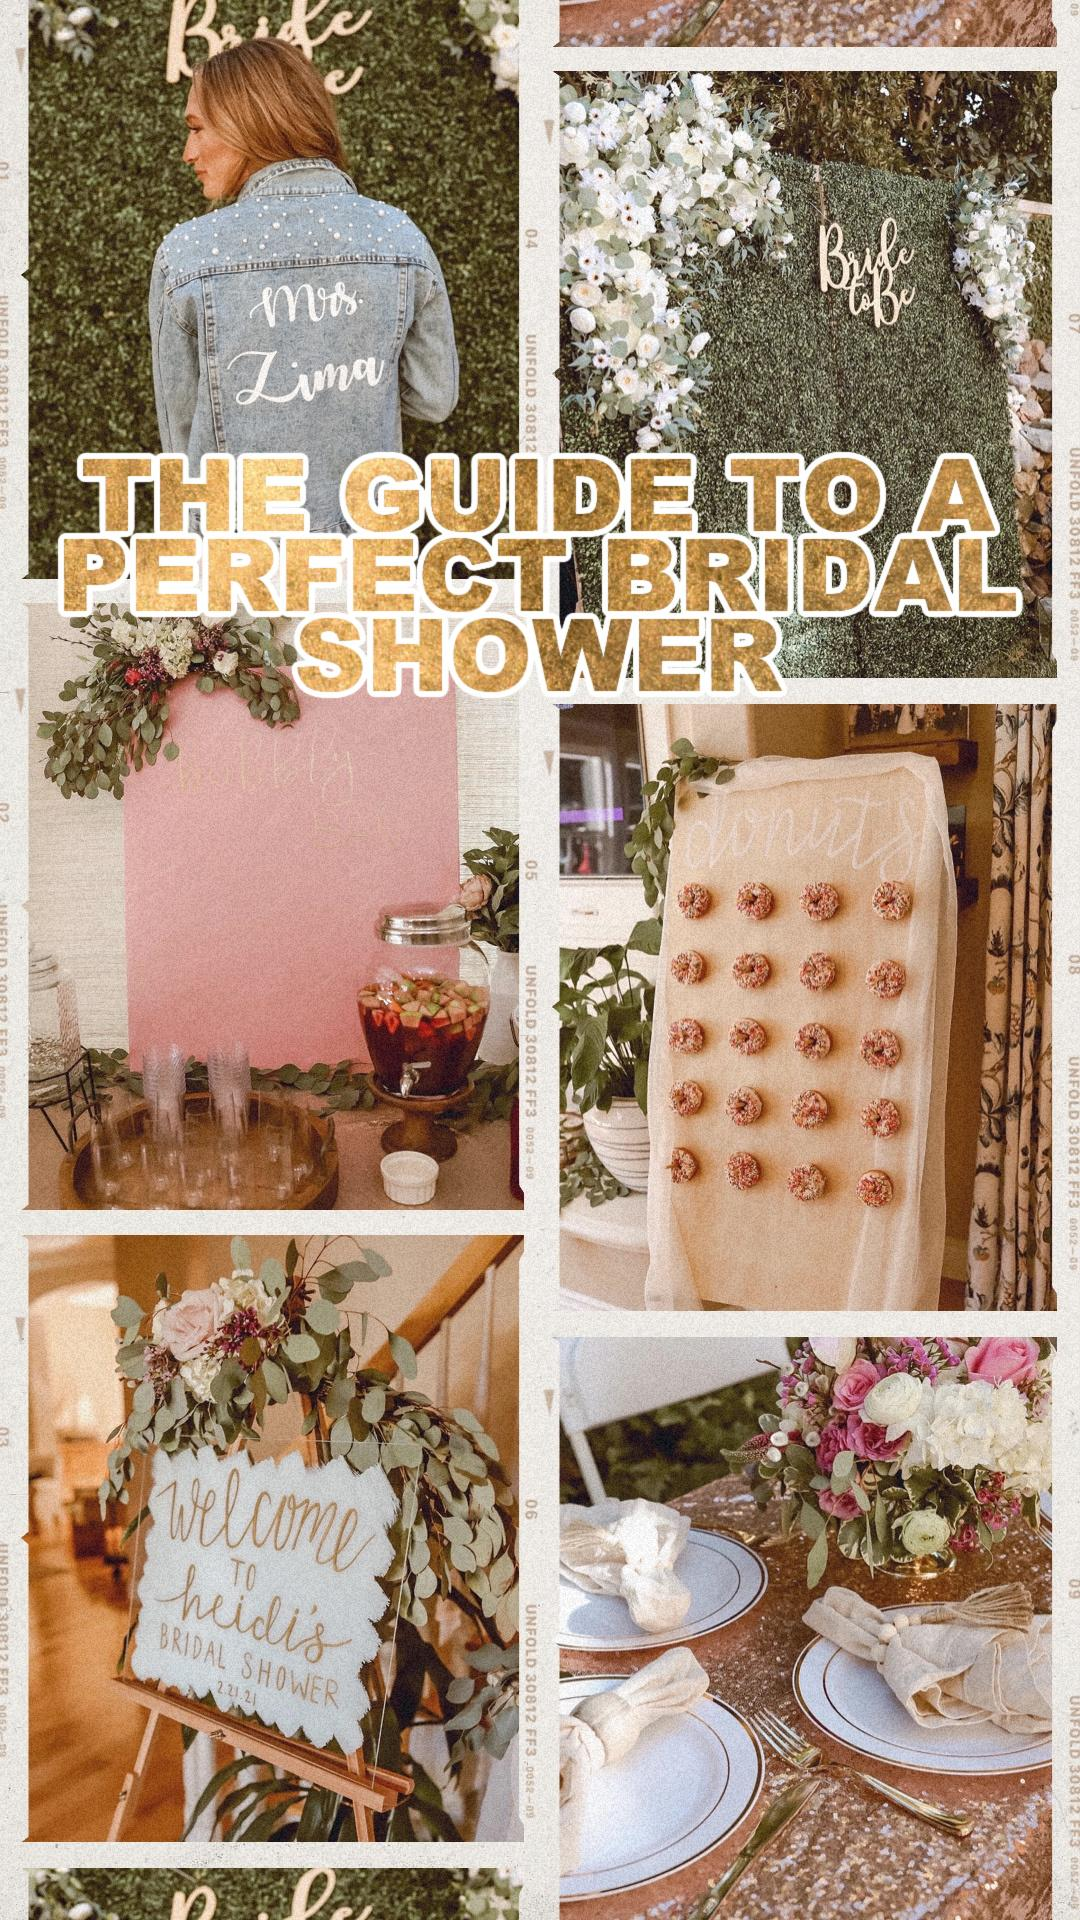 HOW TO THROW AN AMAZING BRIDAL SHOWER | DIY IDEAS, ETSY SHOPS, AND MORE